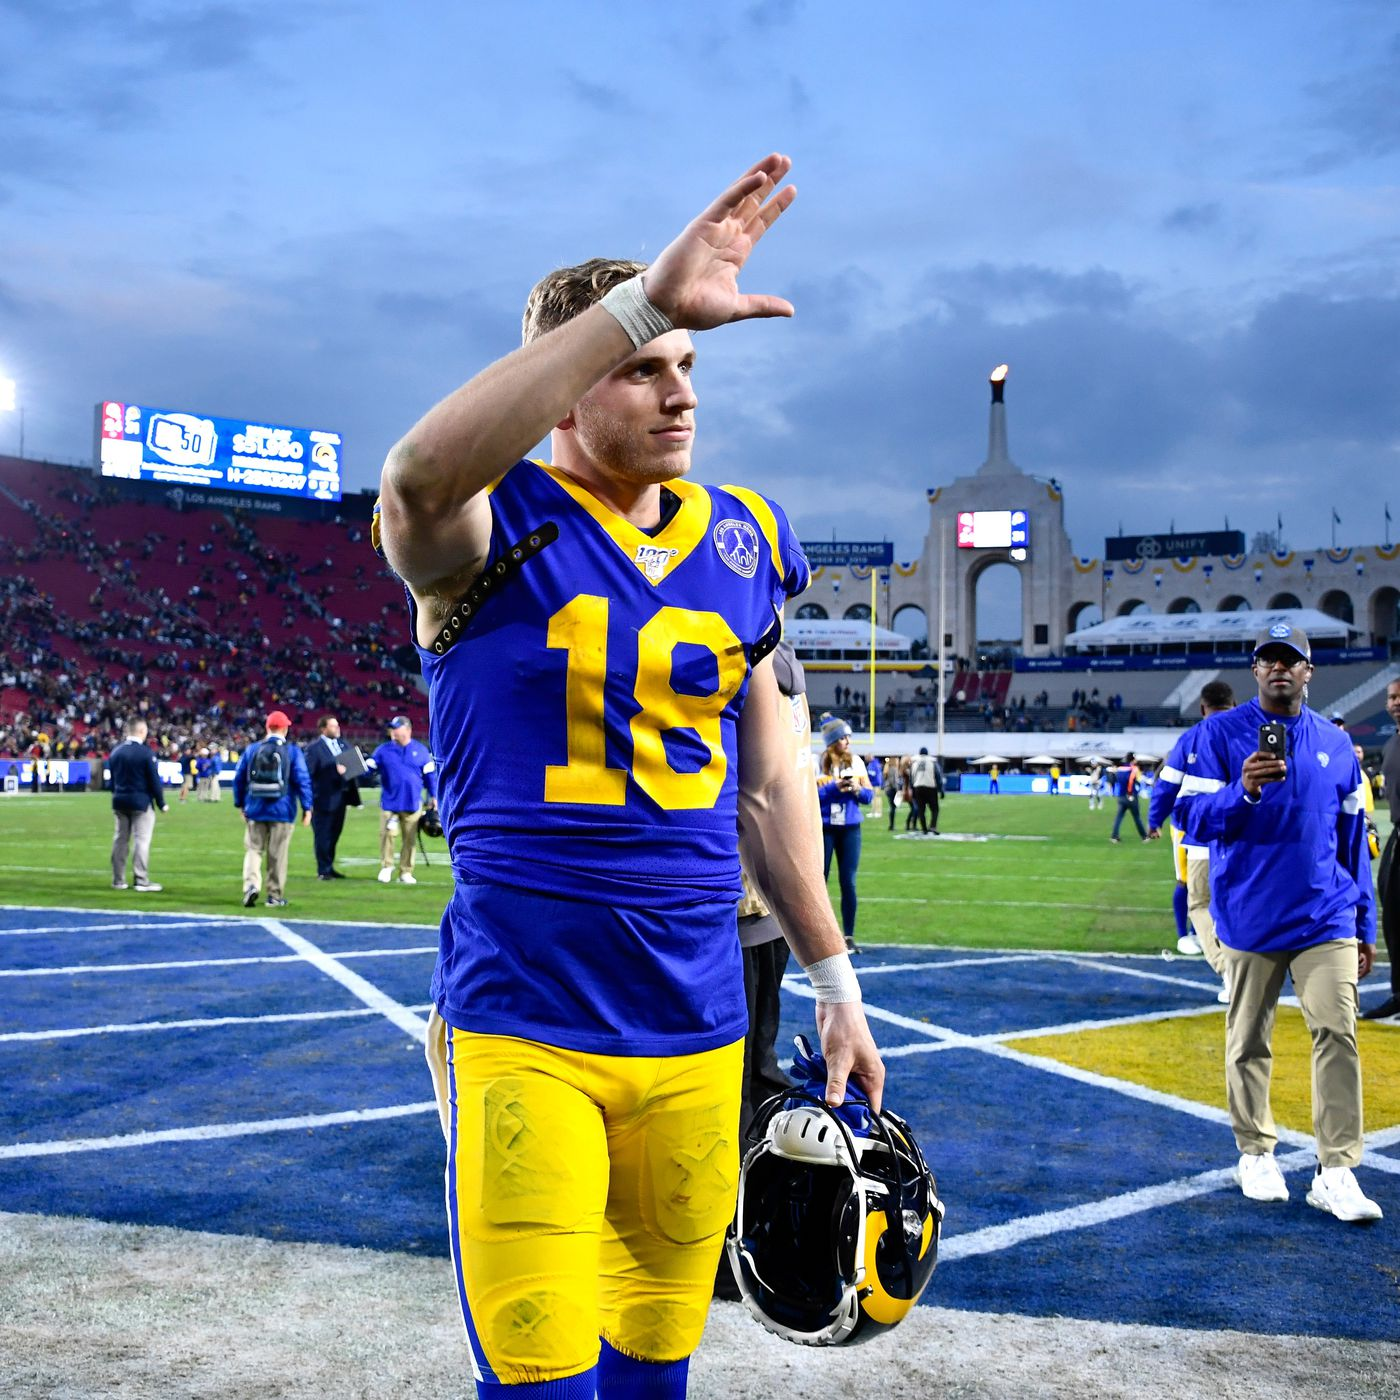 Cooper Kupp Receiving Yards Odds Why He Will Go Over His Offseason Total In 2020 Draftkings Nation